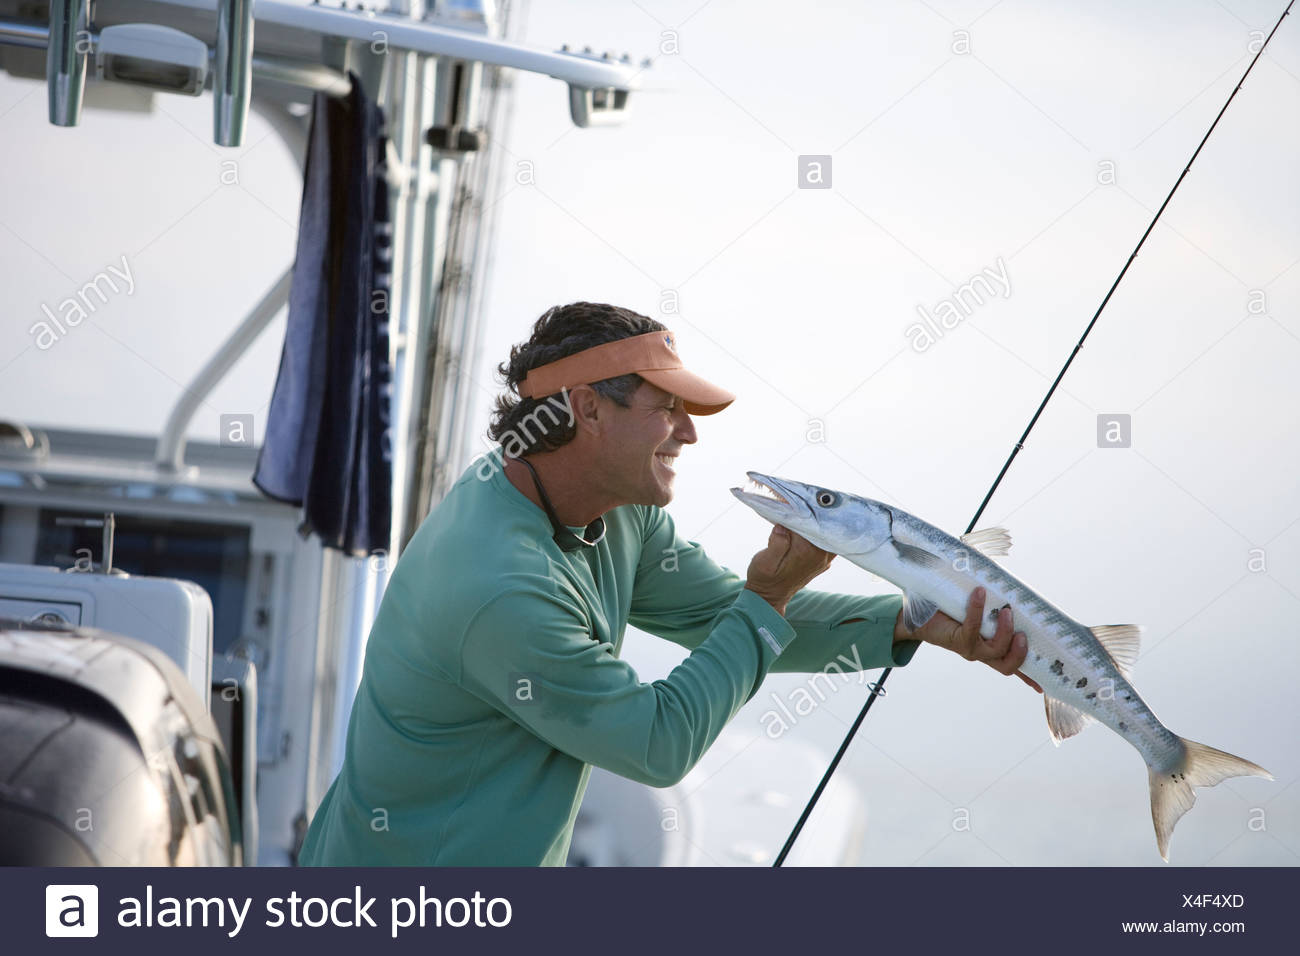 A fisherman smiles at the barracuda he has just caught. - Stock Image